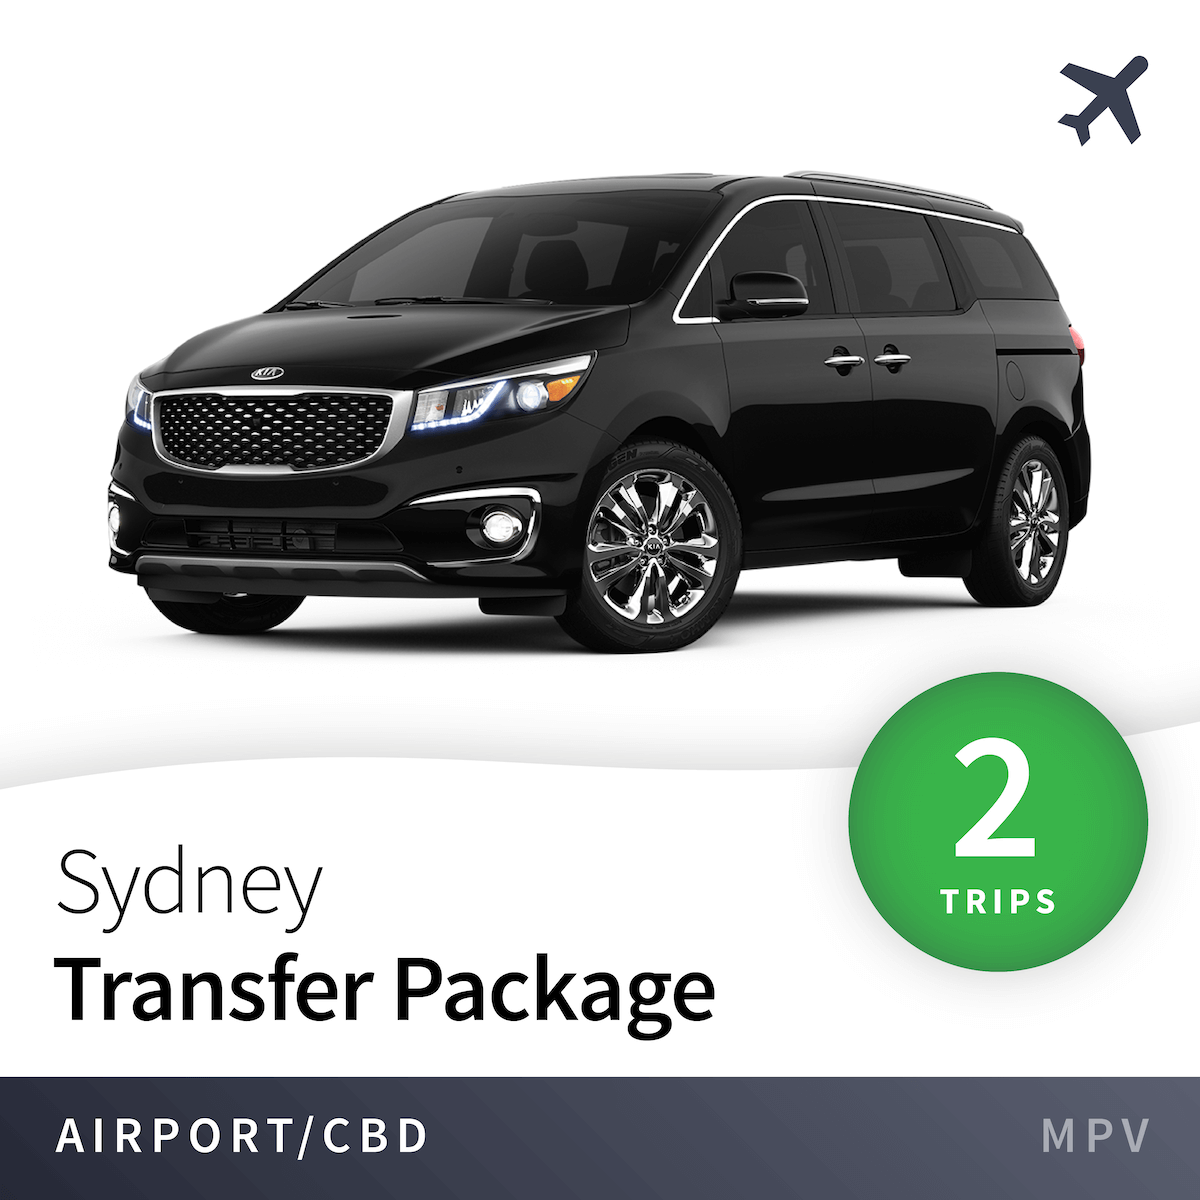 Sydney Airport Transfer Package - MPV (2 Trips) 8